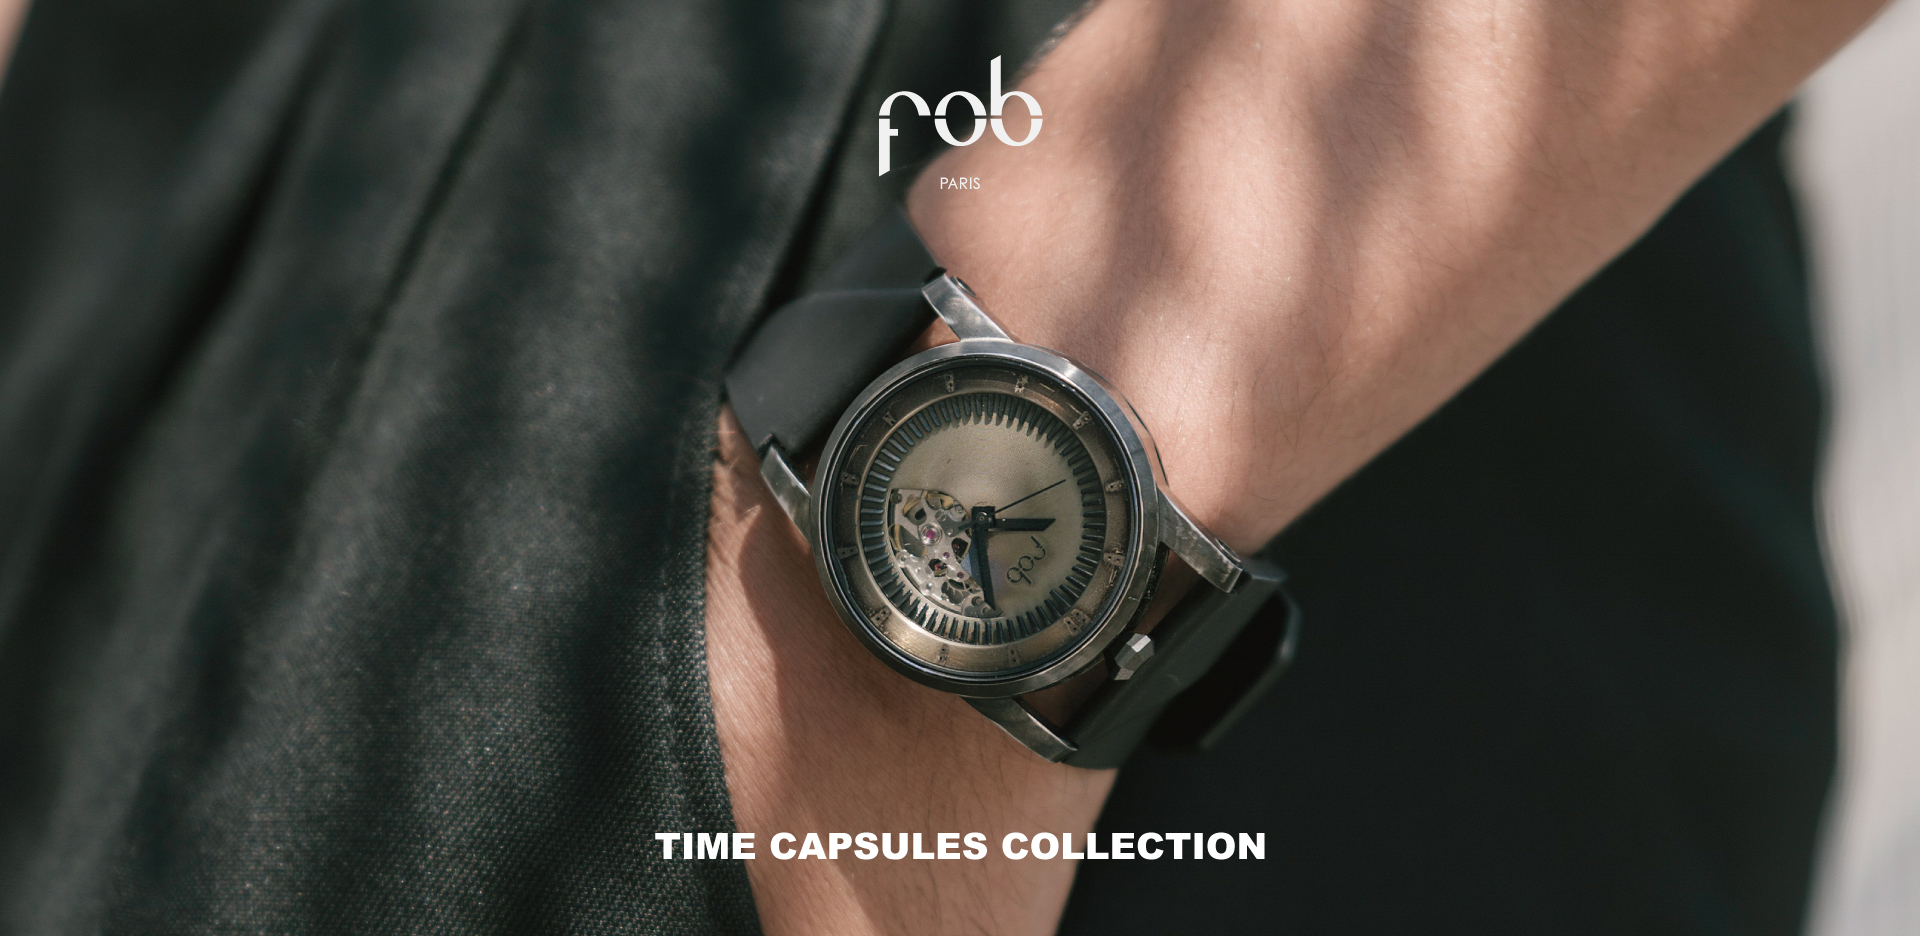 fob paris time capsules collection